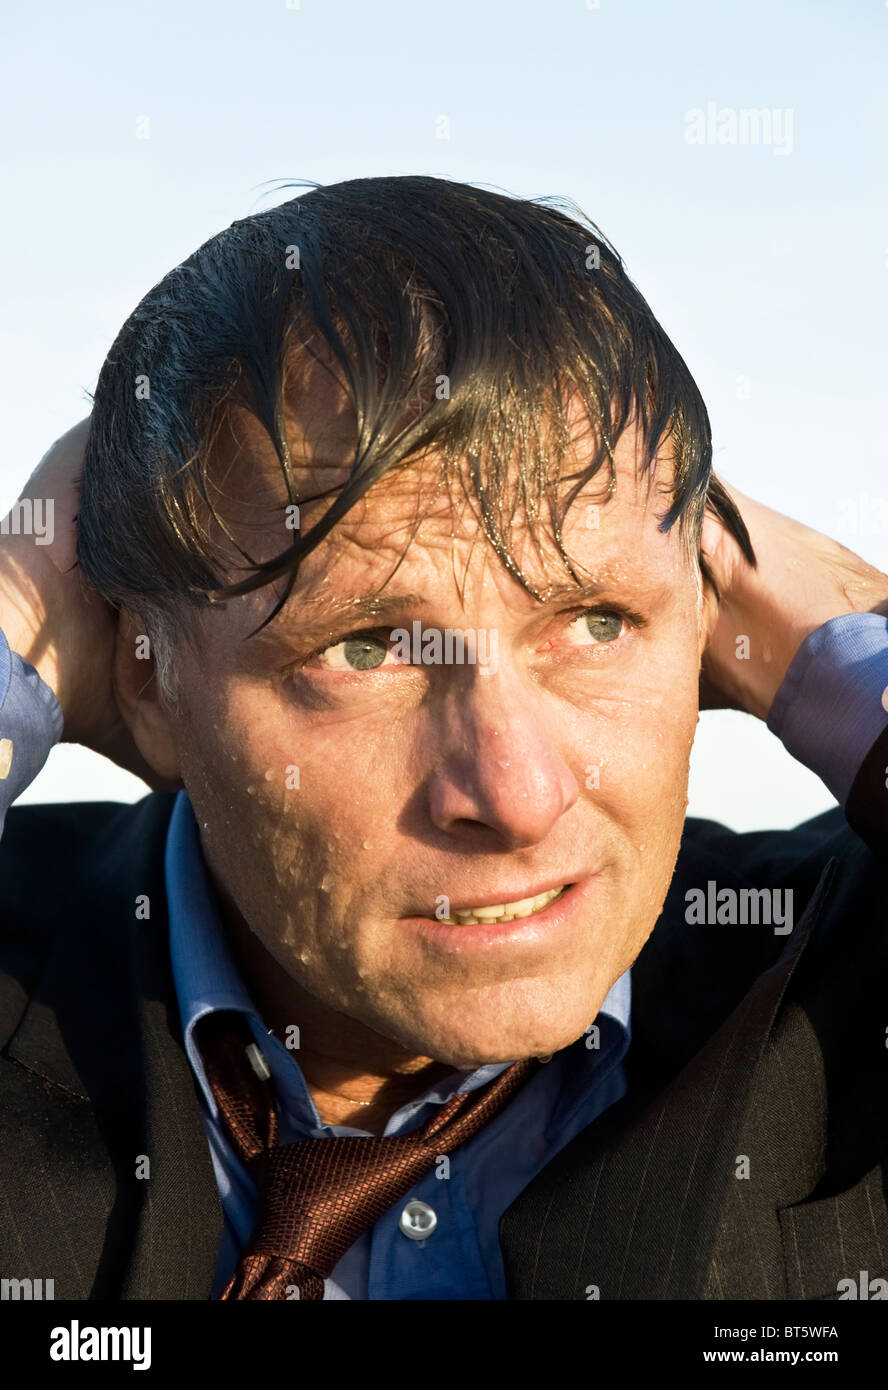 A depressed and anxious looking businessman who is soaking wet. - Stock Image